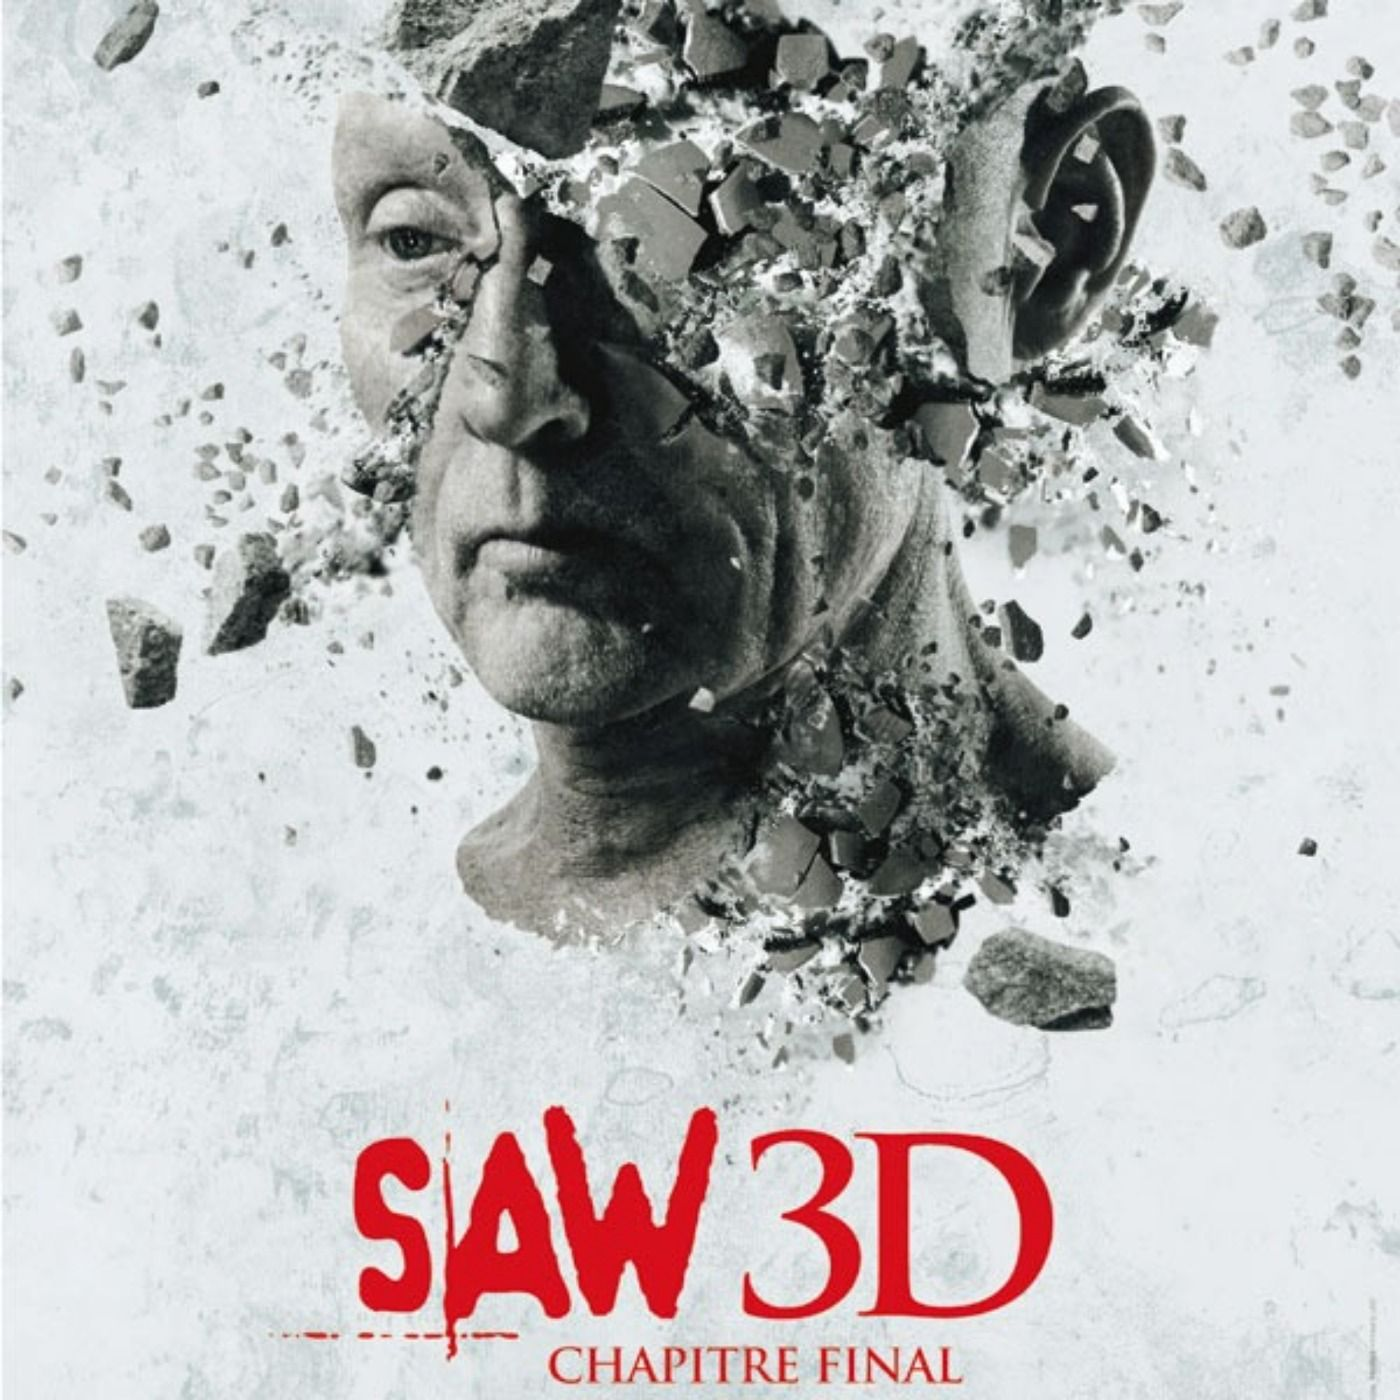 PODCAST CINEMA | CRITIQUE DU FILM SAW 3D : Chapitre Final - CinéMaRadio